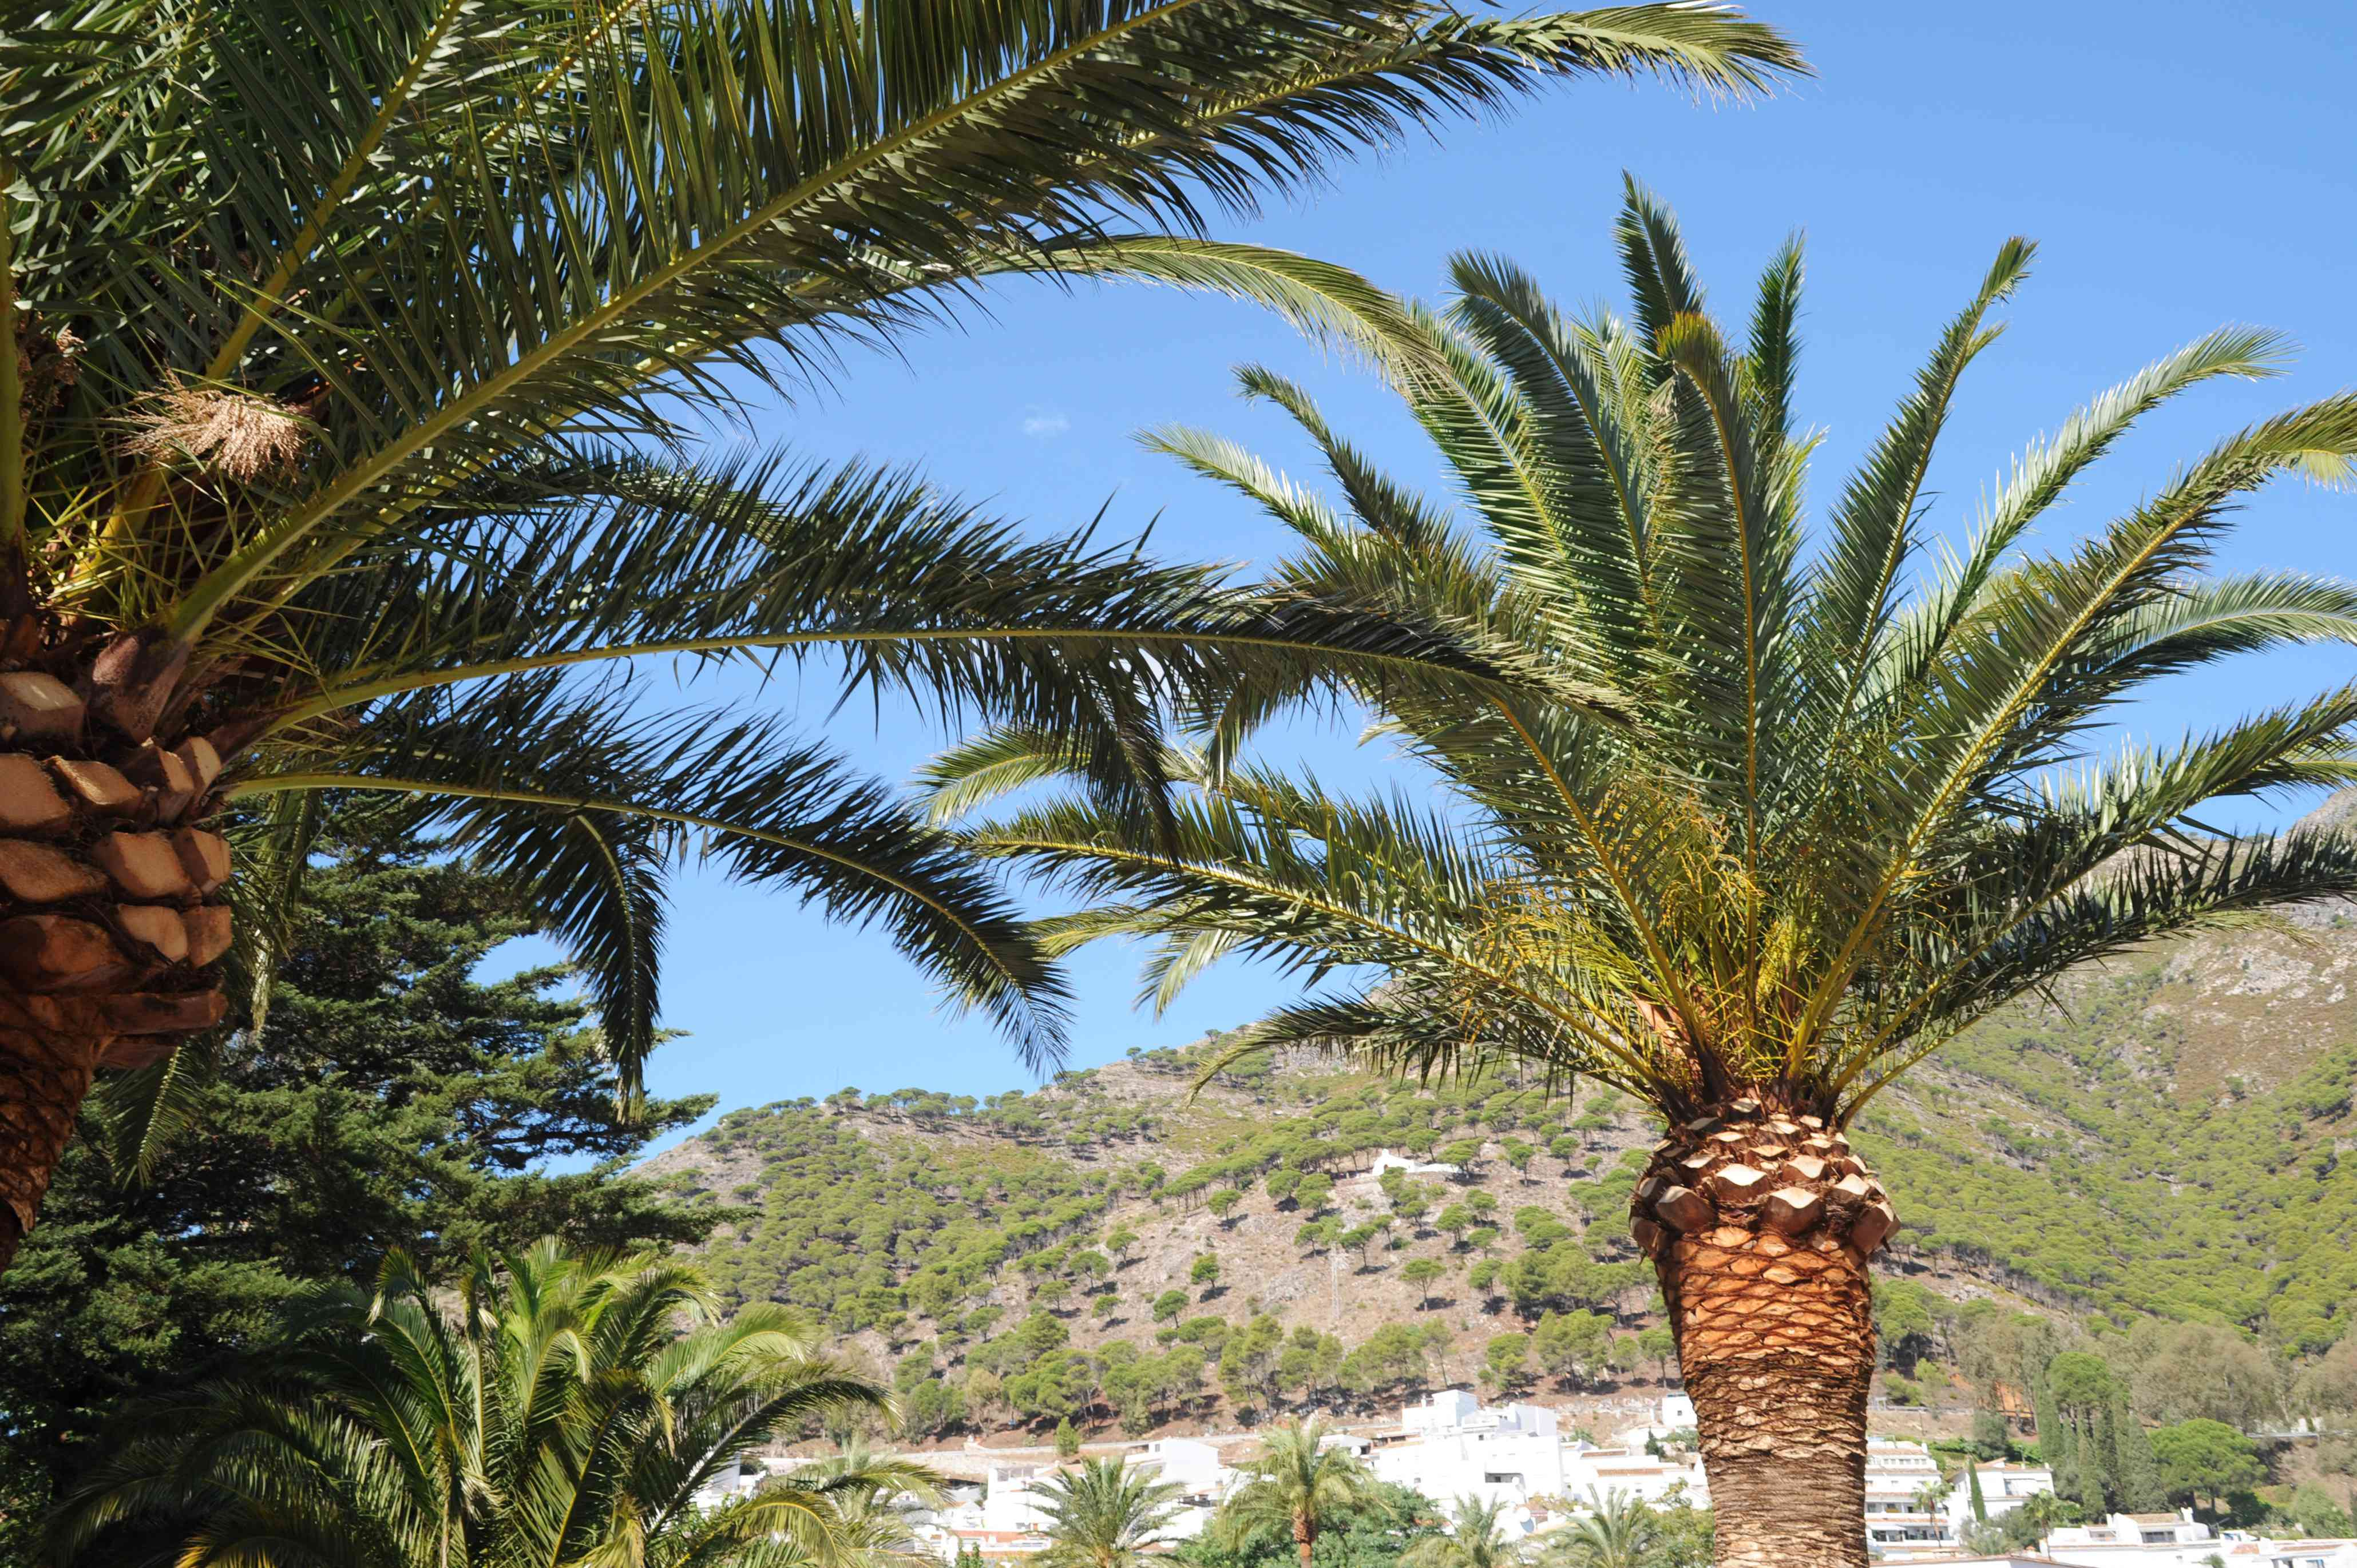 Date palm trees in front of mountain